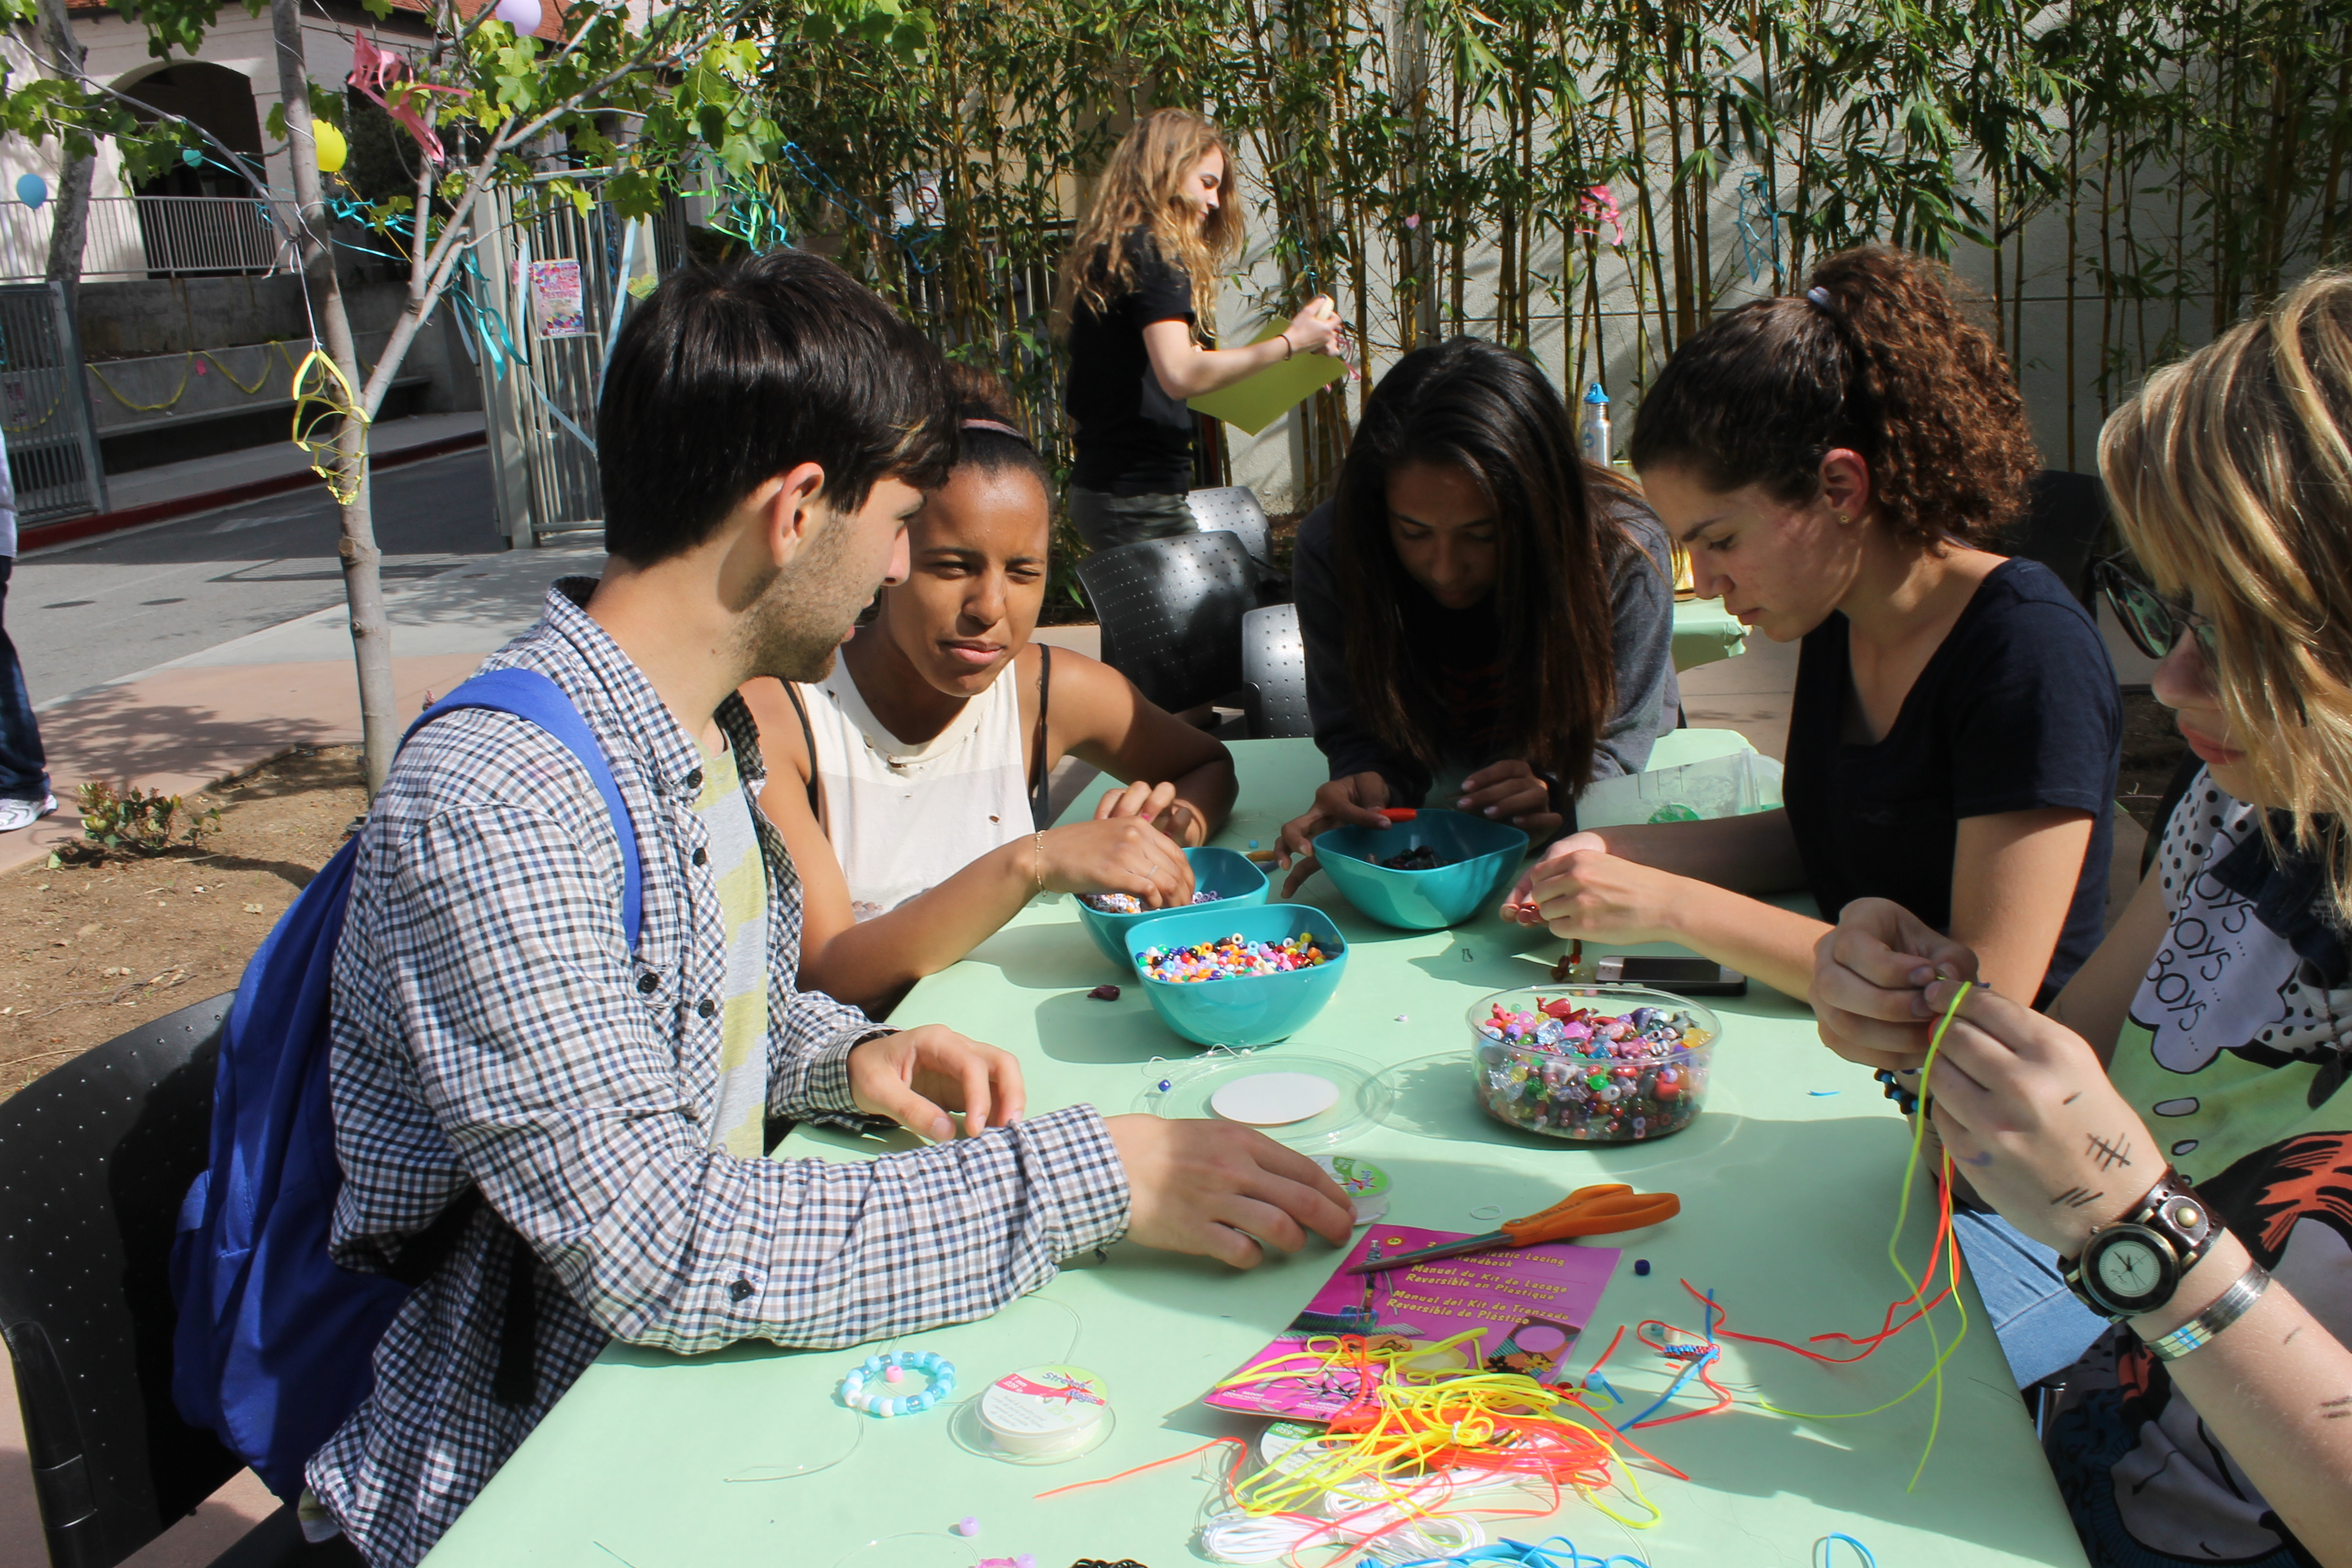 Attendees create bracelets and necklaces at the jewelry station.